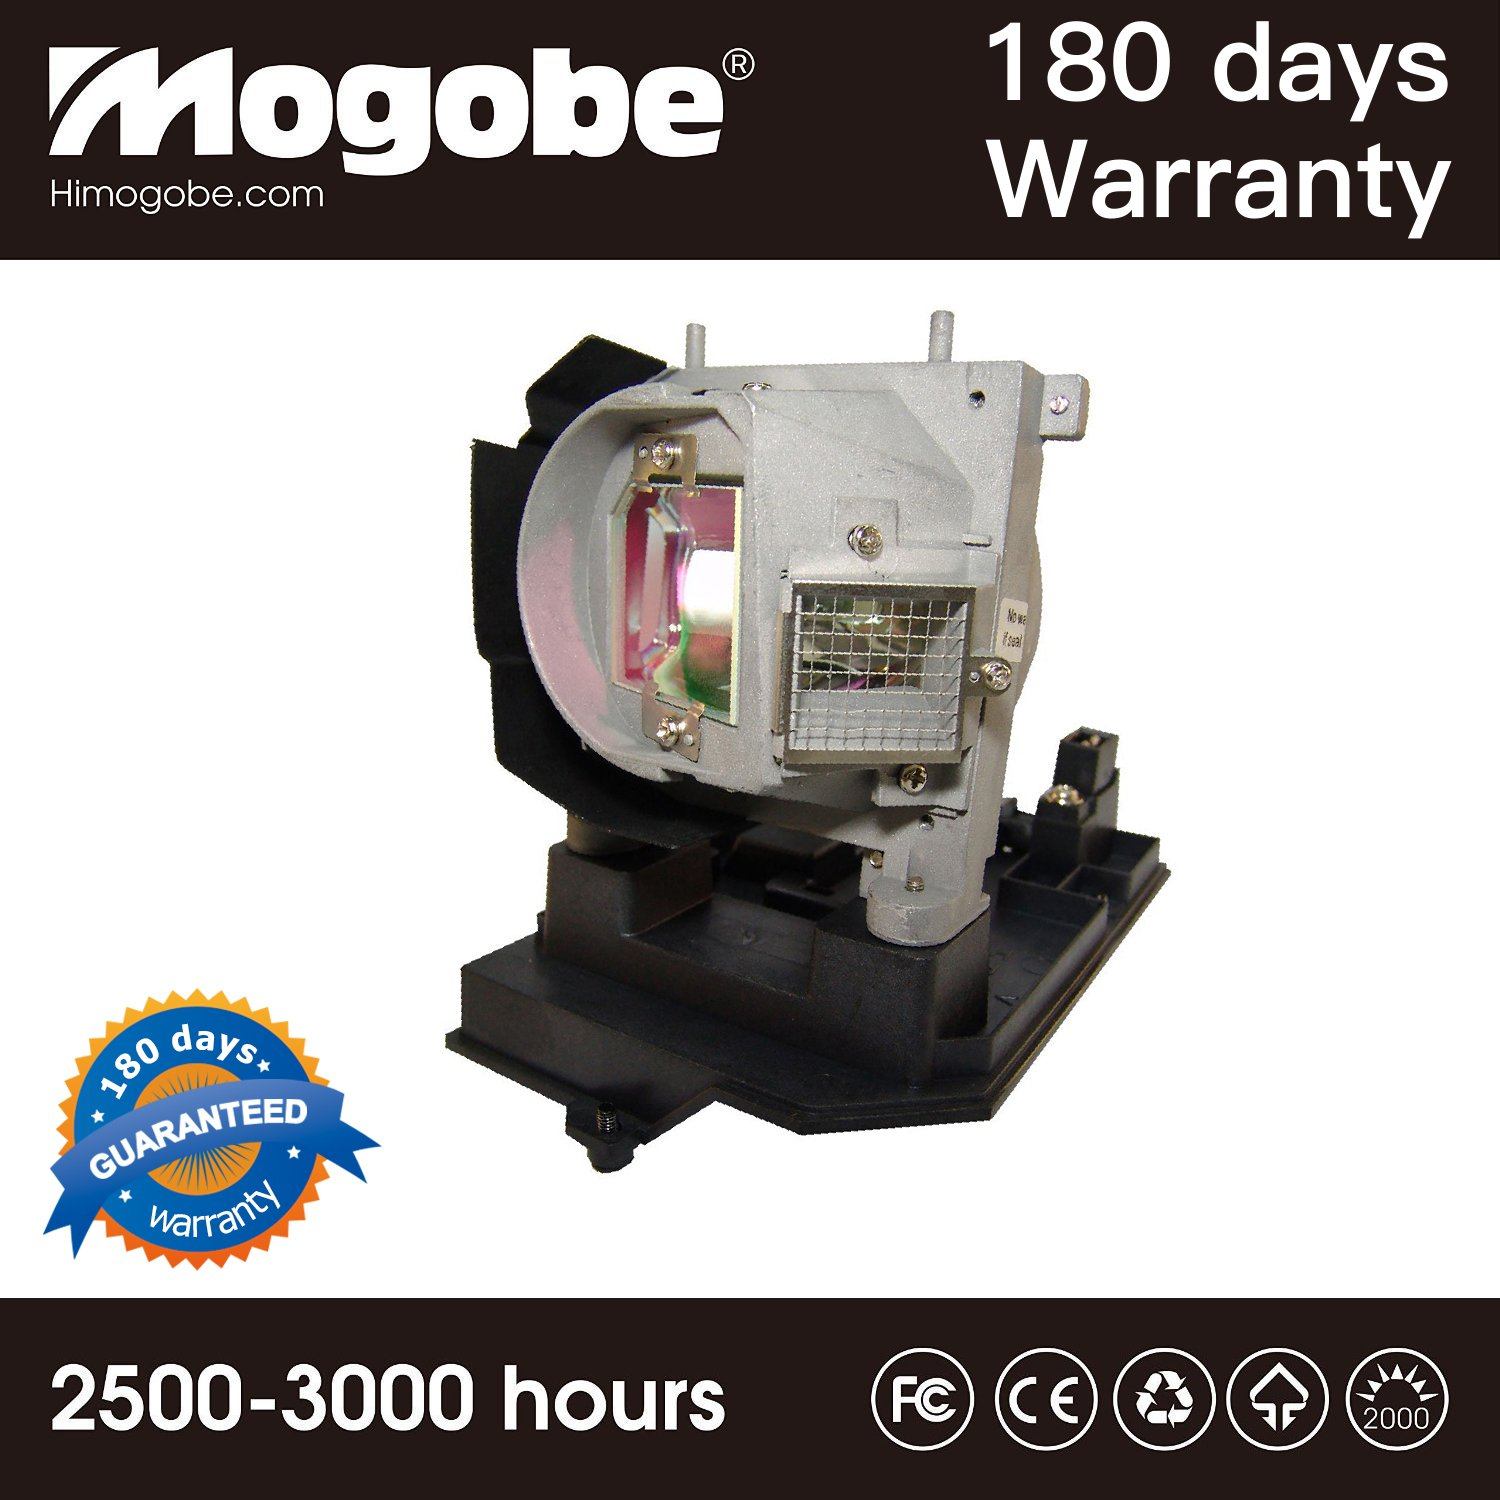 For 725-10263 331-1310 KT74N Projector Replacement Compatible Lamp with Housing for DELL S500 S500wi by Mogobe